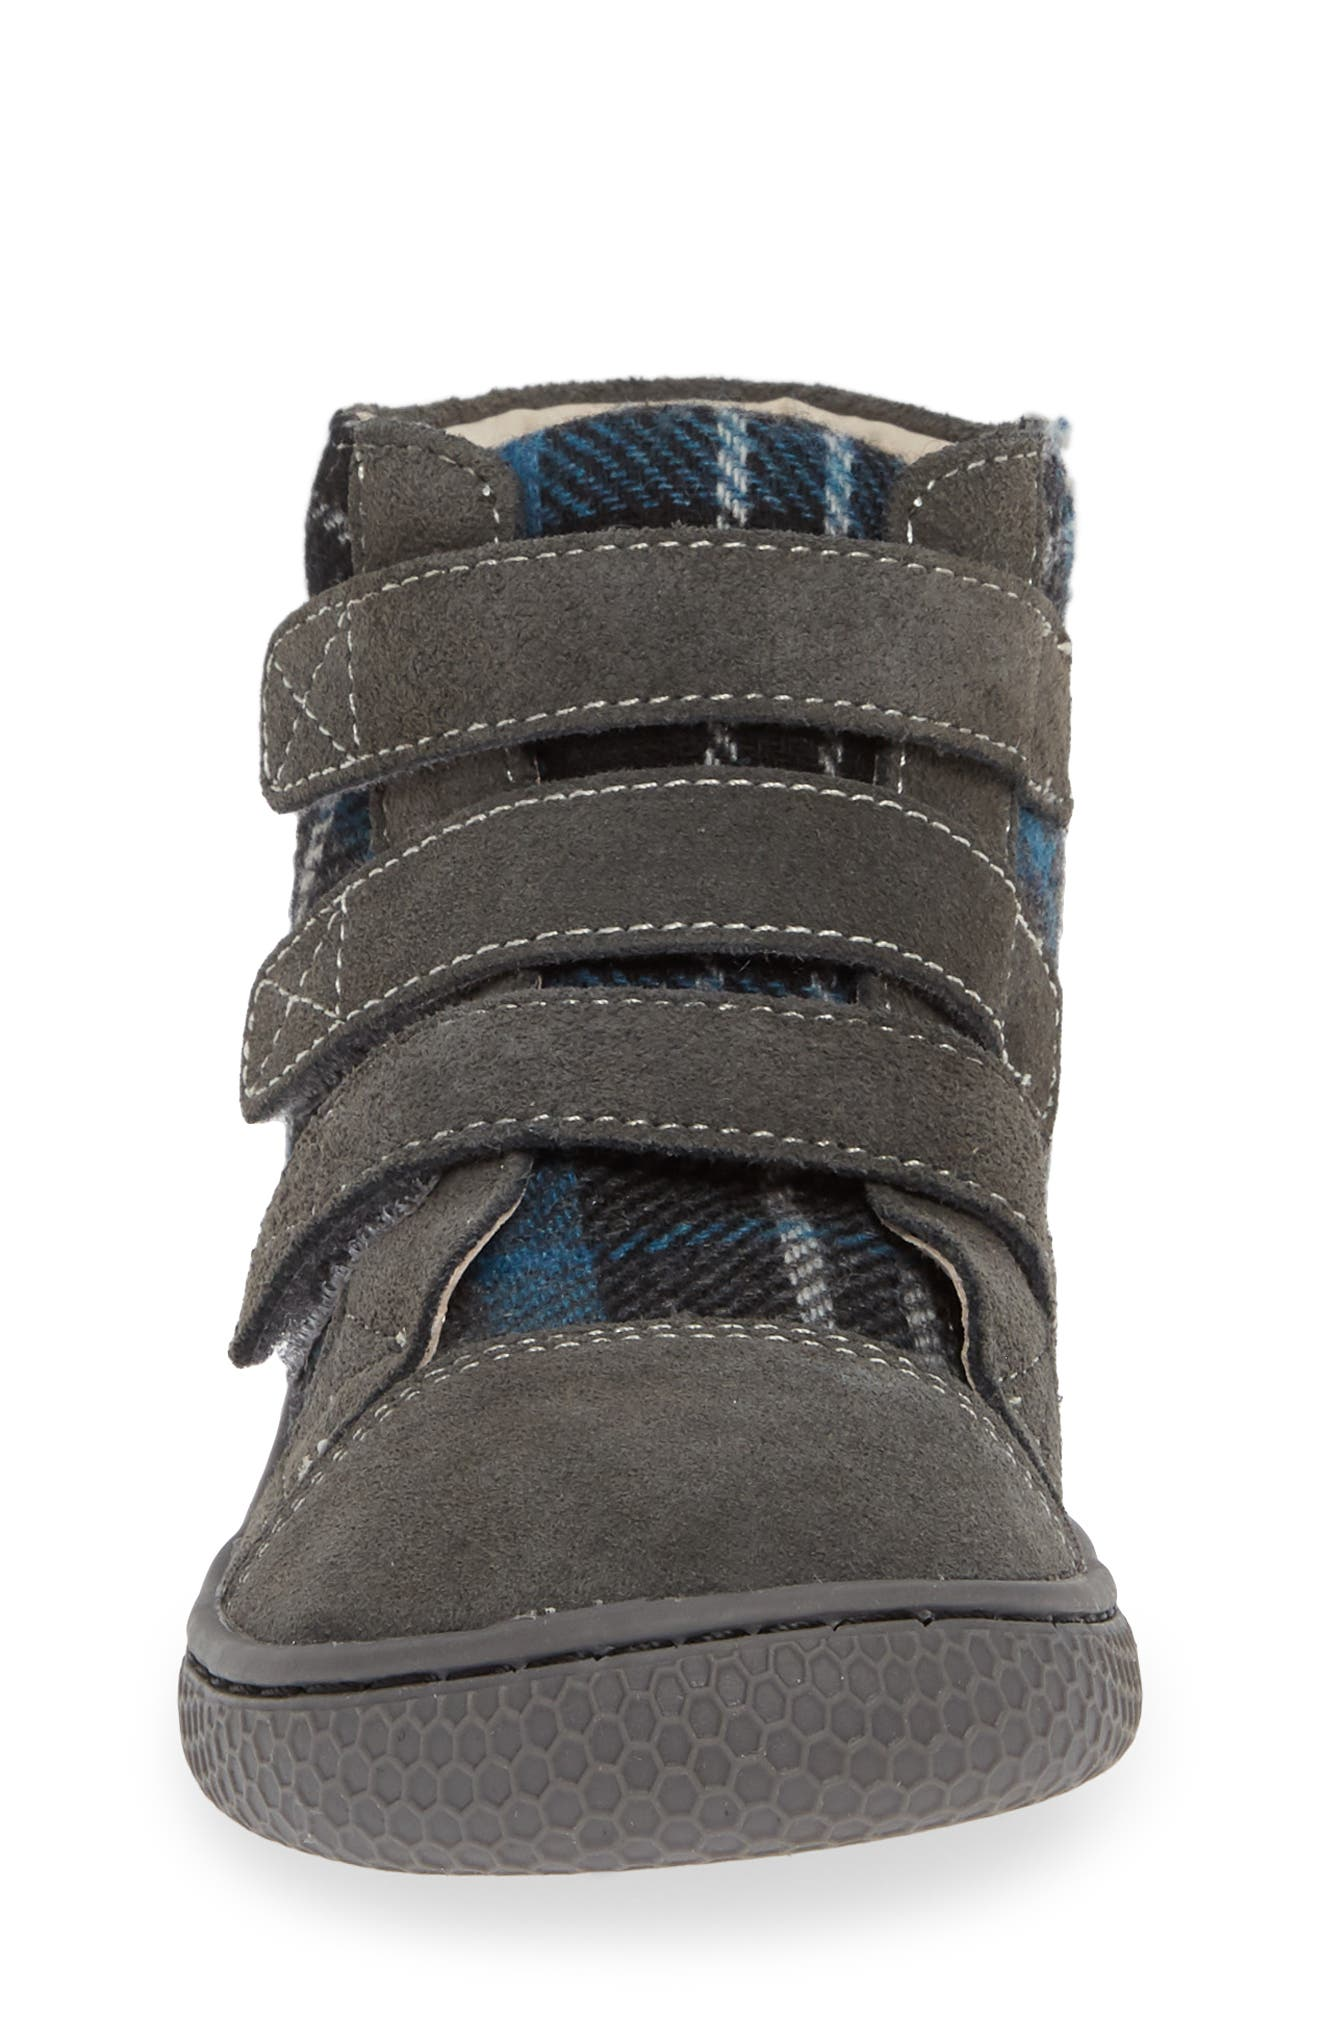 'Jamie' High Top Sneaker,                             Alternate thumbnail 4, color,                             GRAY PLAID